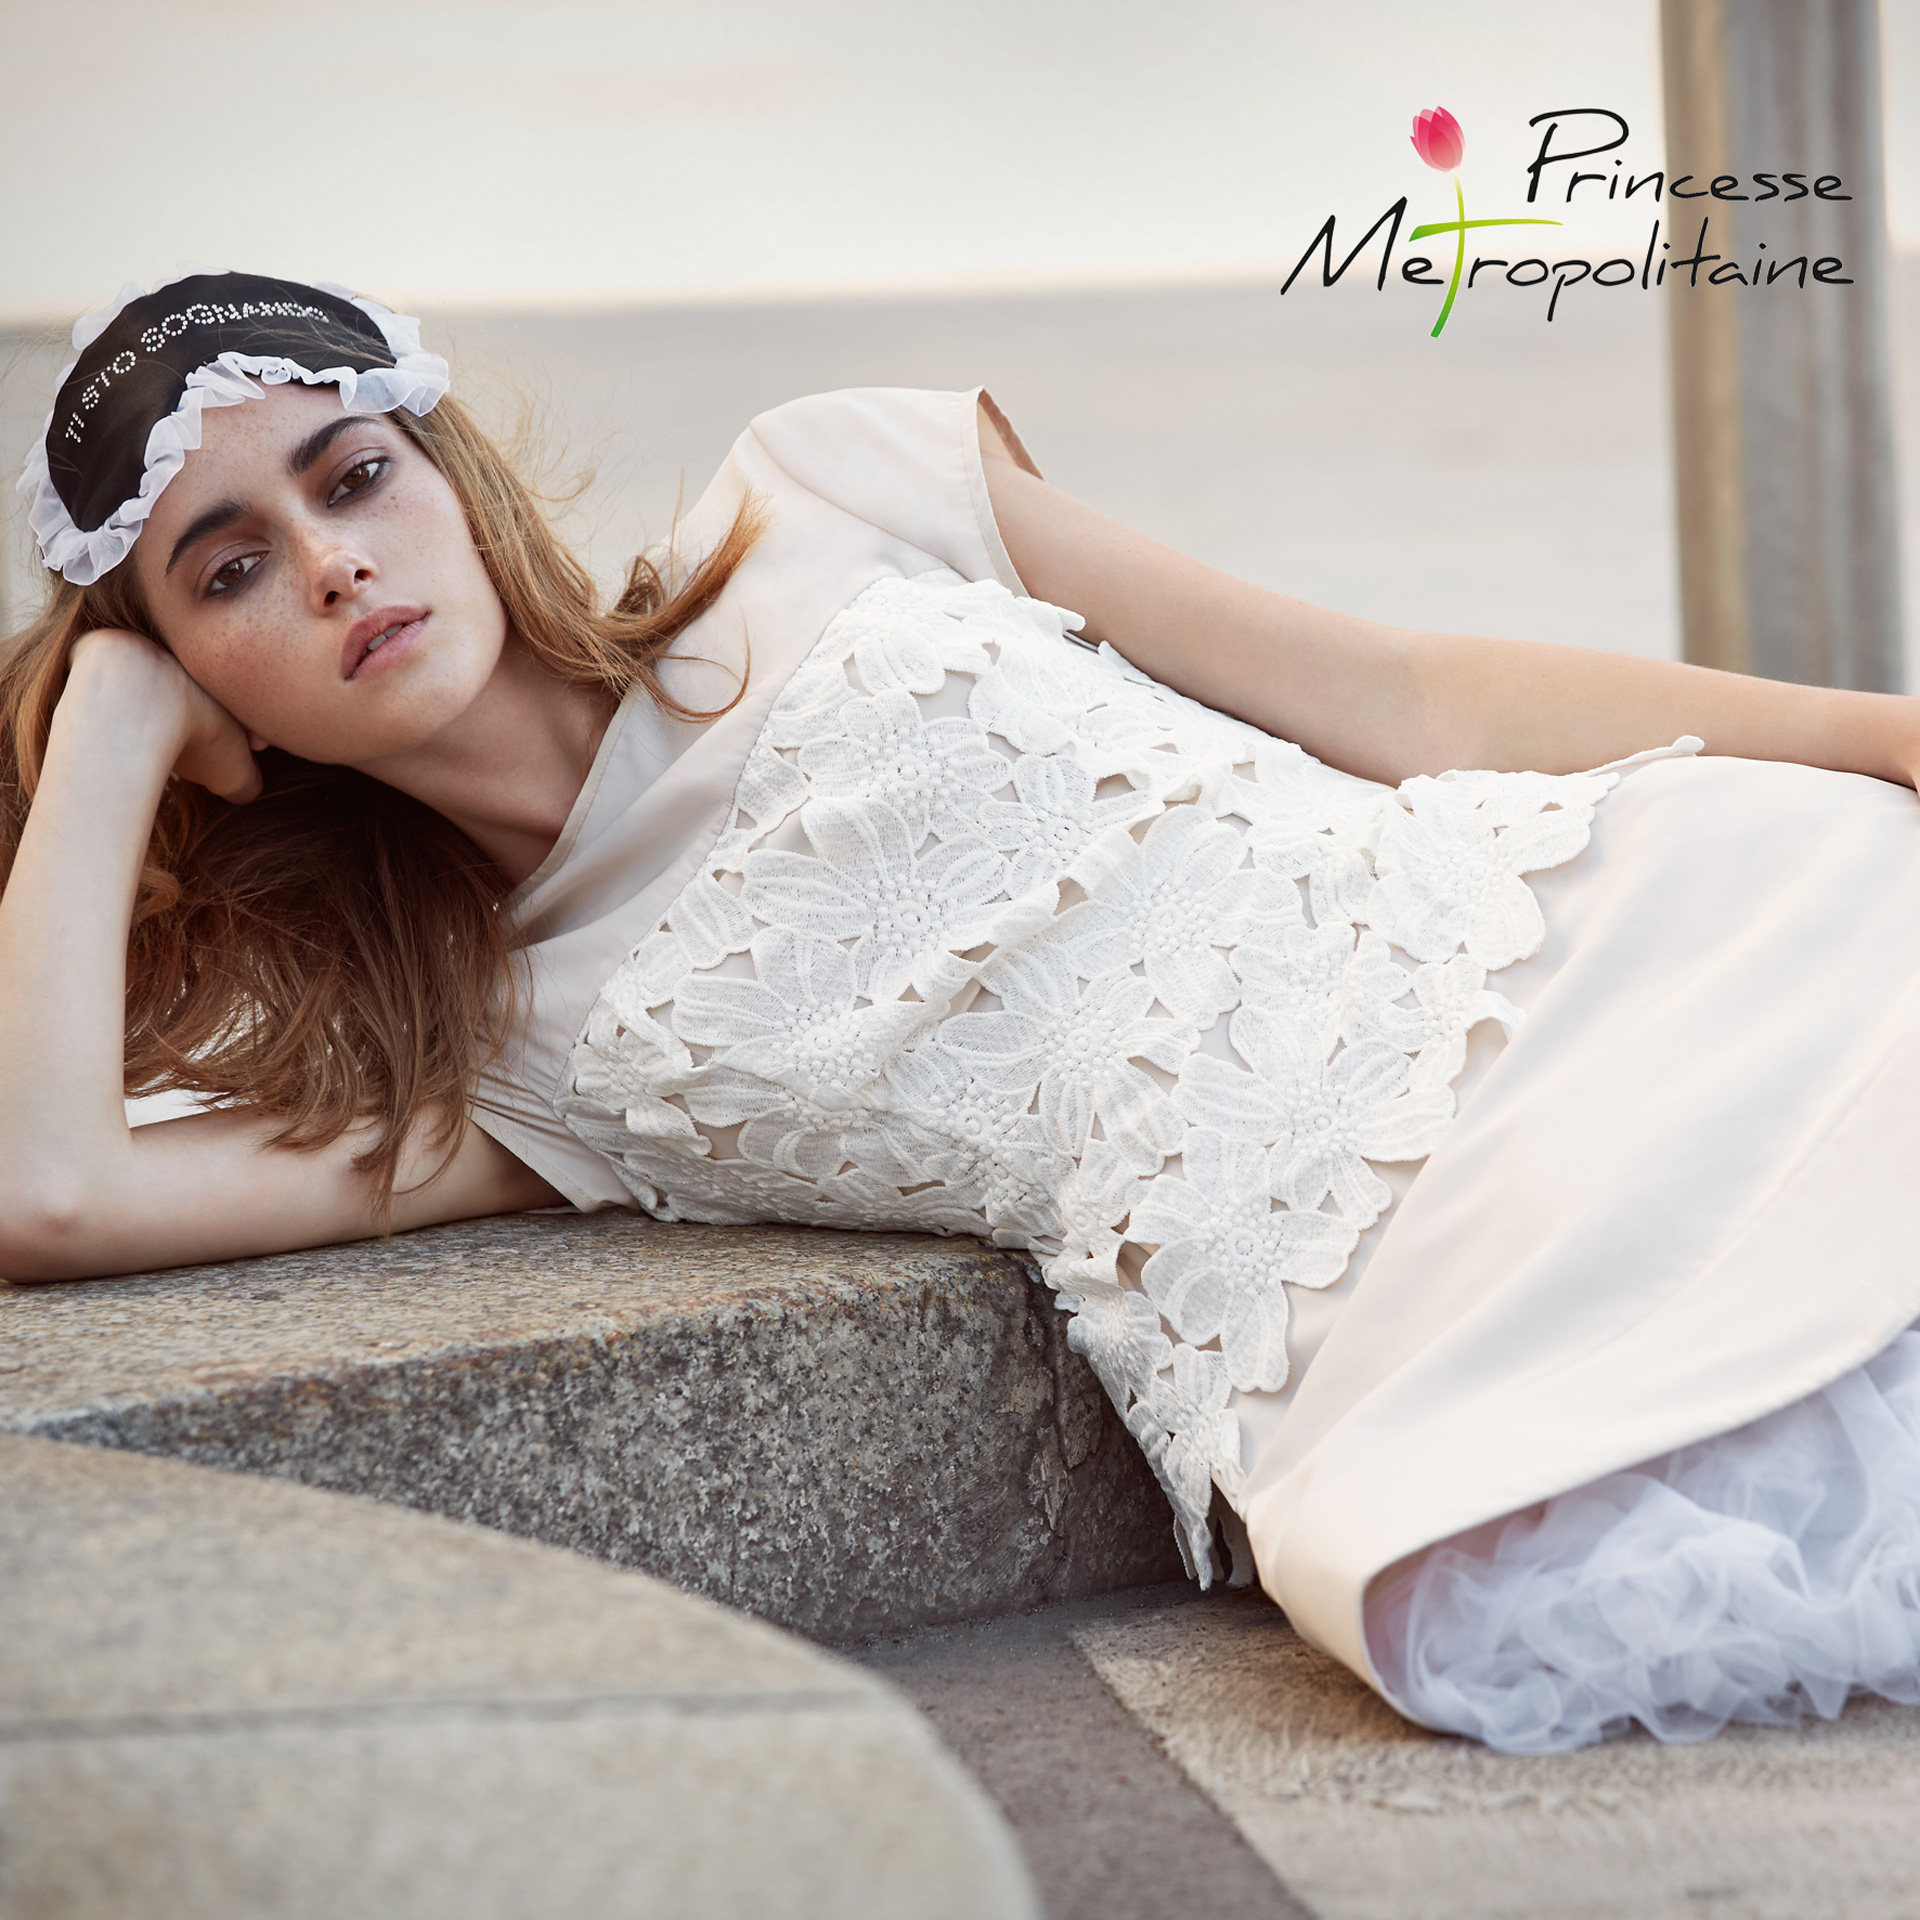 Spring Summer Collection: Article Grifone dress 2